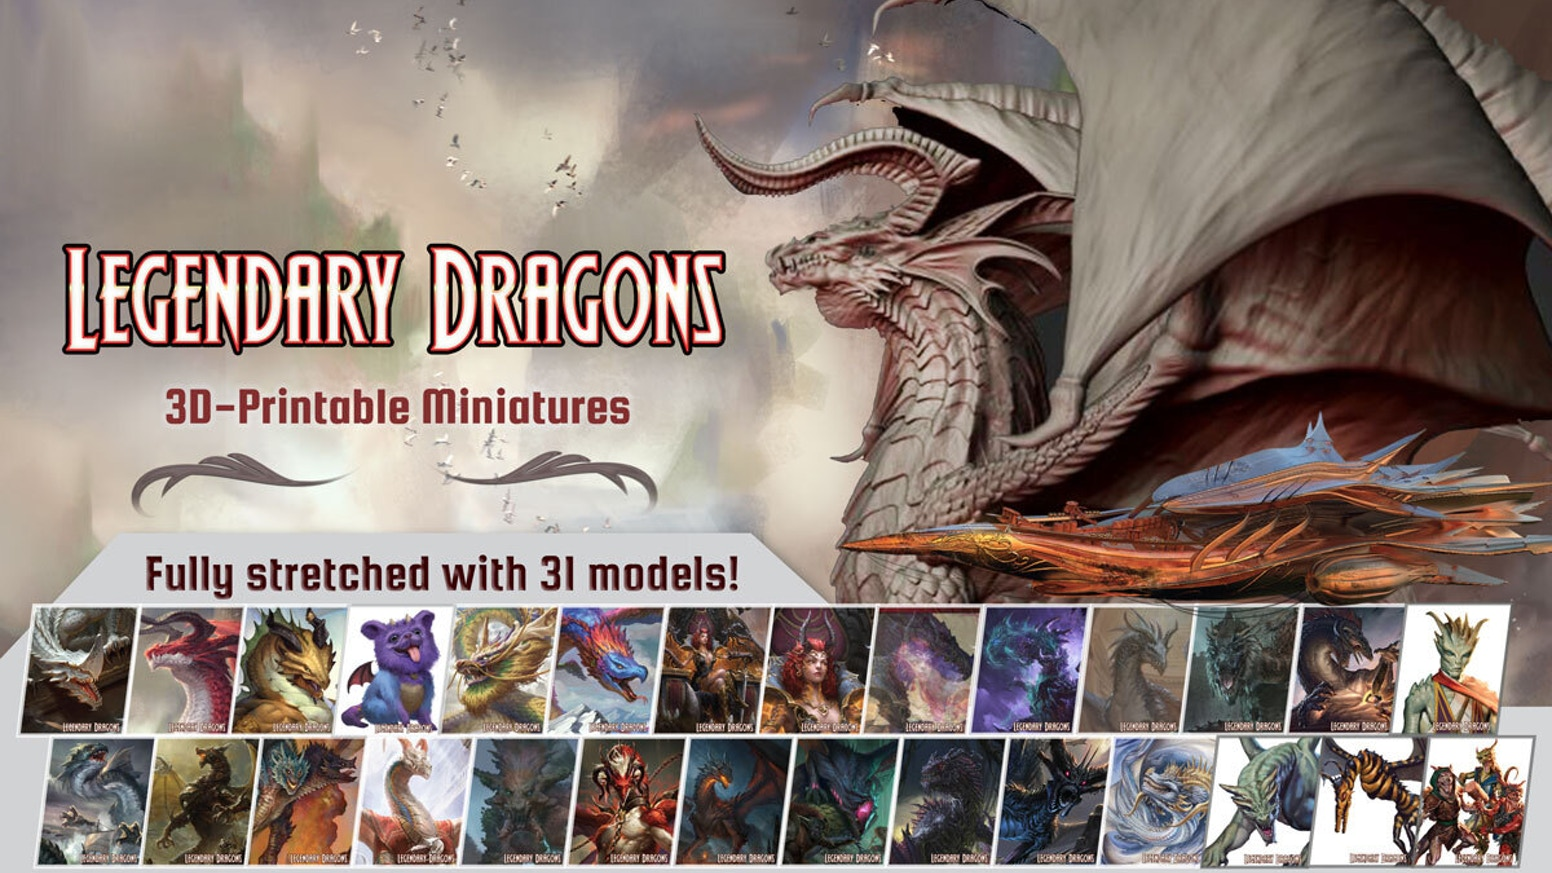 3D printable files for Legendary Dragons by Jetpack7 in collaboration with Lair.